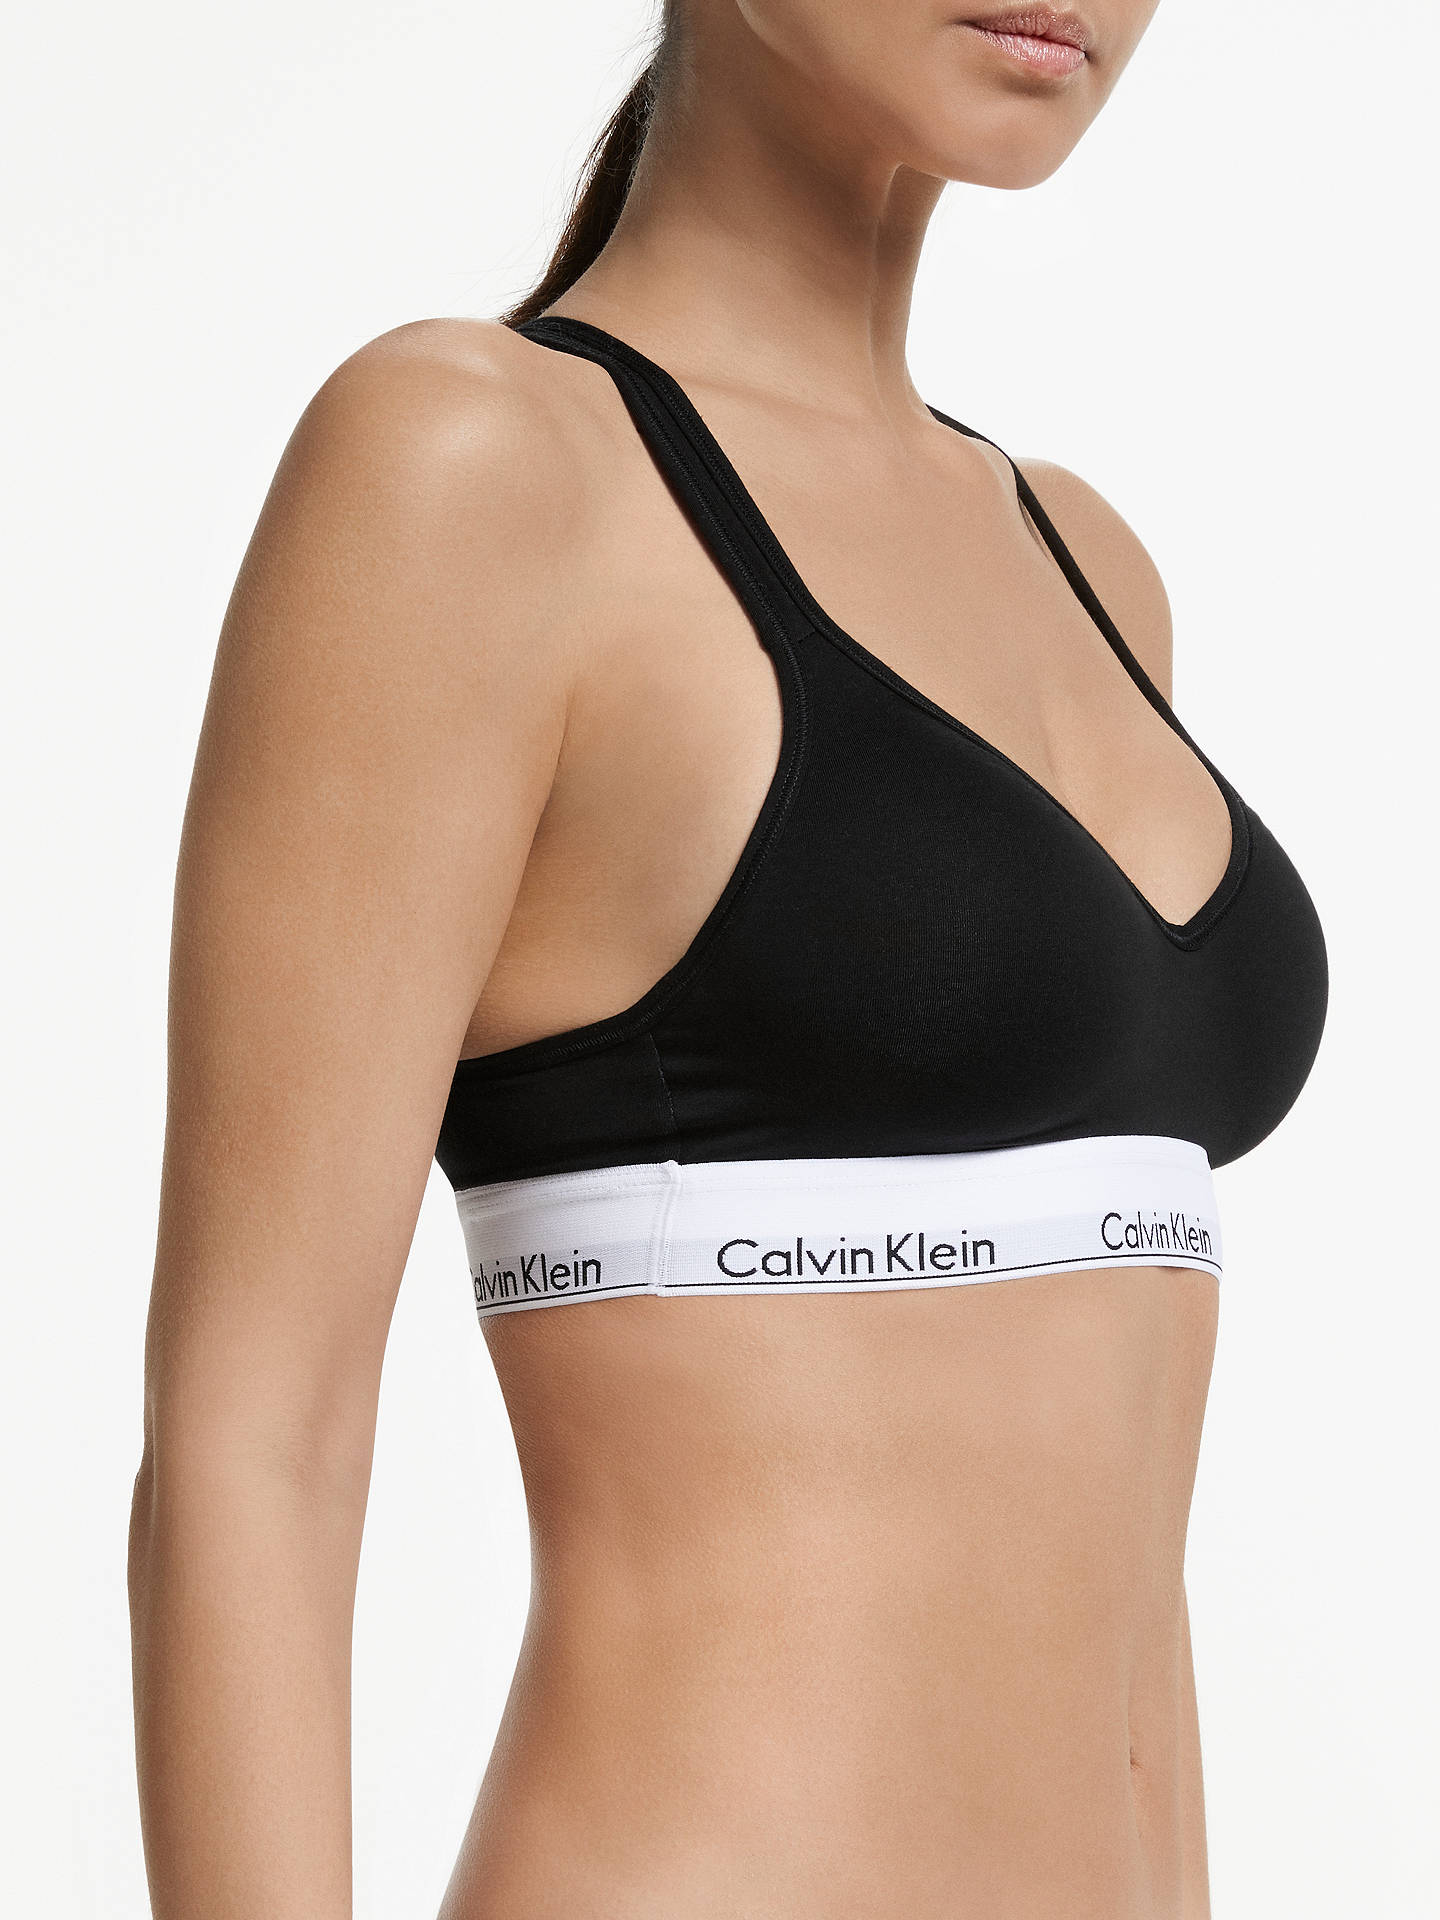 110c76056a2b53 Calvin Klein Modern Cotton Cross Strap Lift Bralette at John Lewis ...